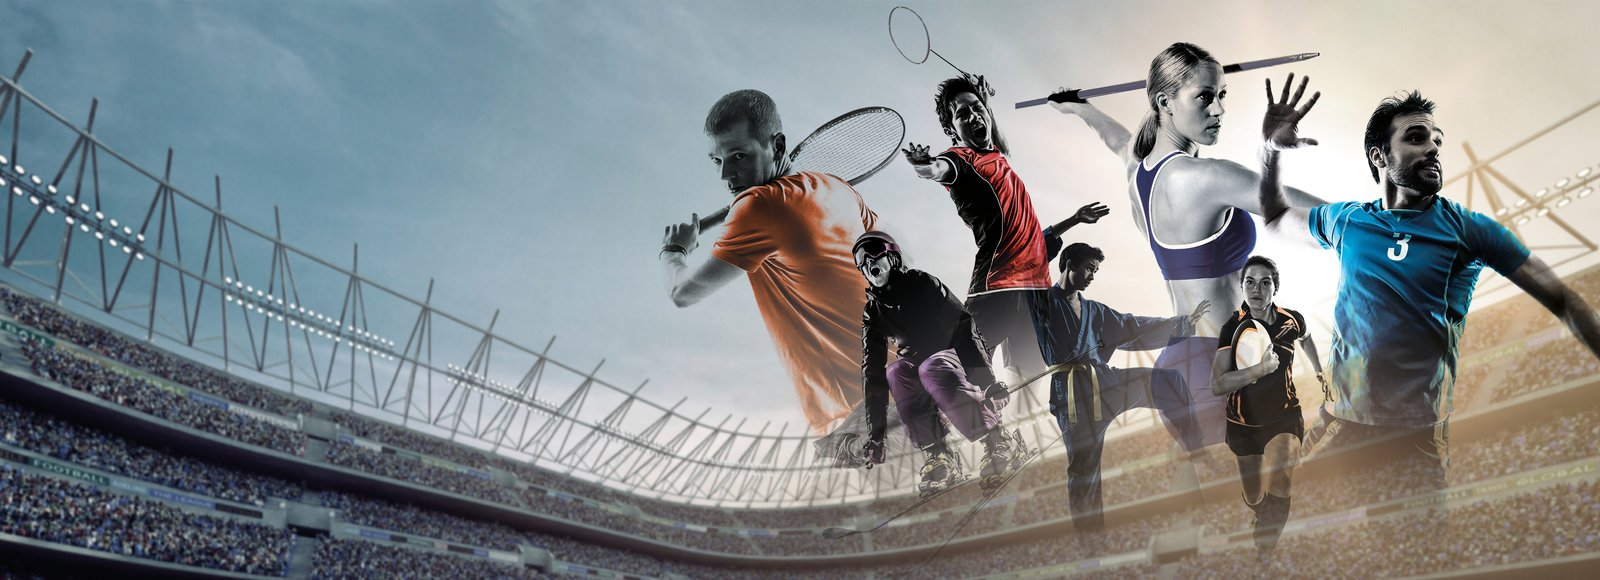 sports_montage_-_chosen_concept_v9_carouselv3_rgb-jpg__1600x580_q85_crop_upscale